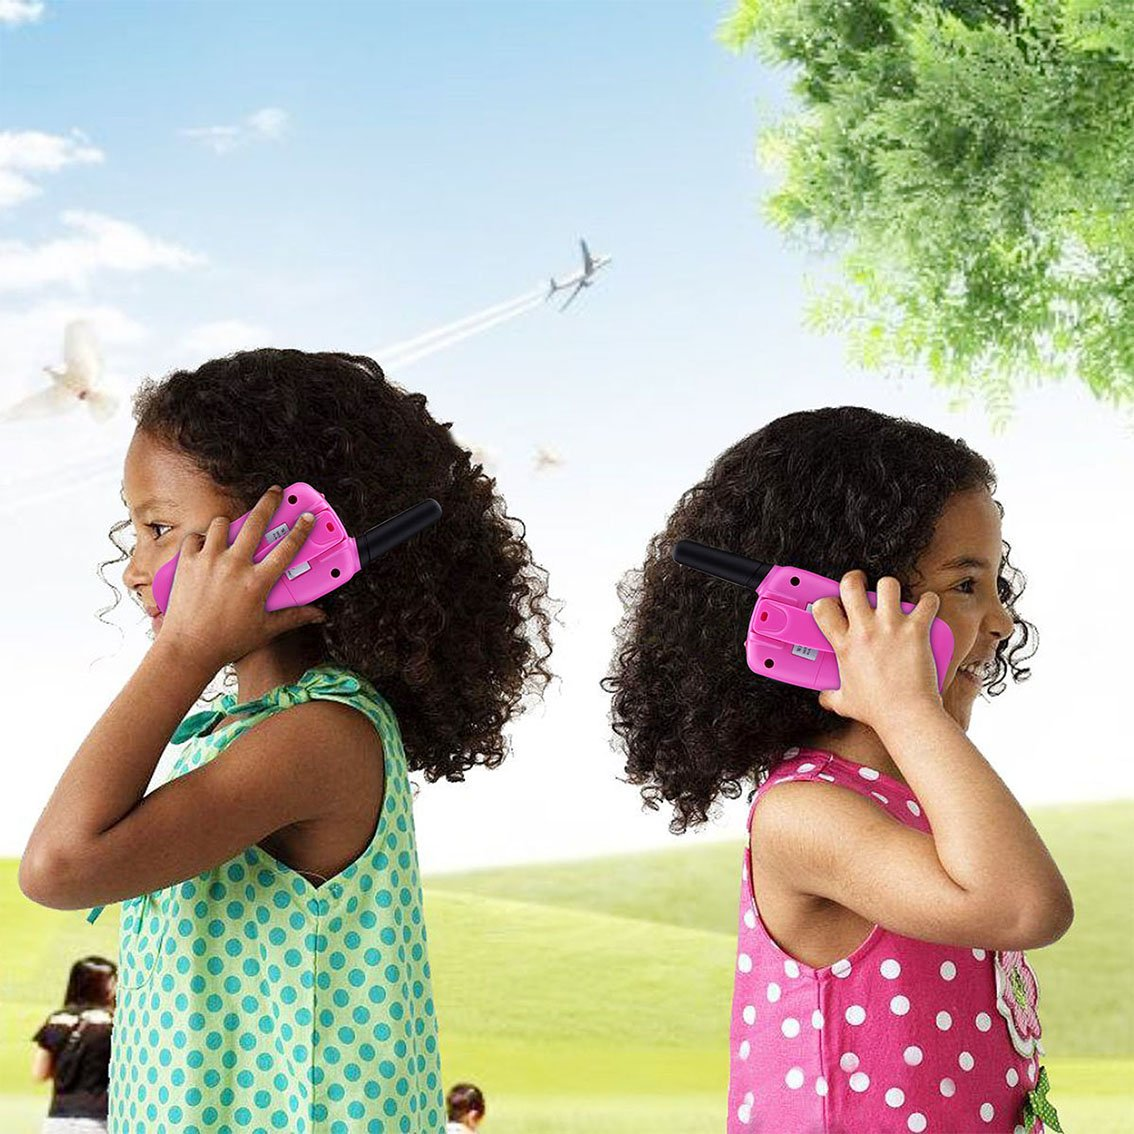 Toys for 3-12 Year Old Girls, DIMY Walkies Talkies for Kids Girls Toys Age 3-12 Year Old Girl Outdoor Toys for Kids Pink DJ06 by DIMY (Image #2)